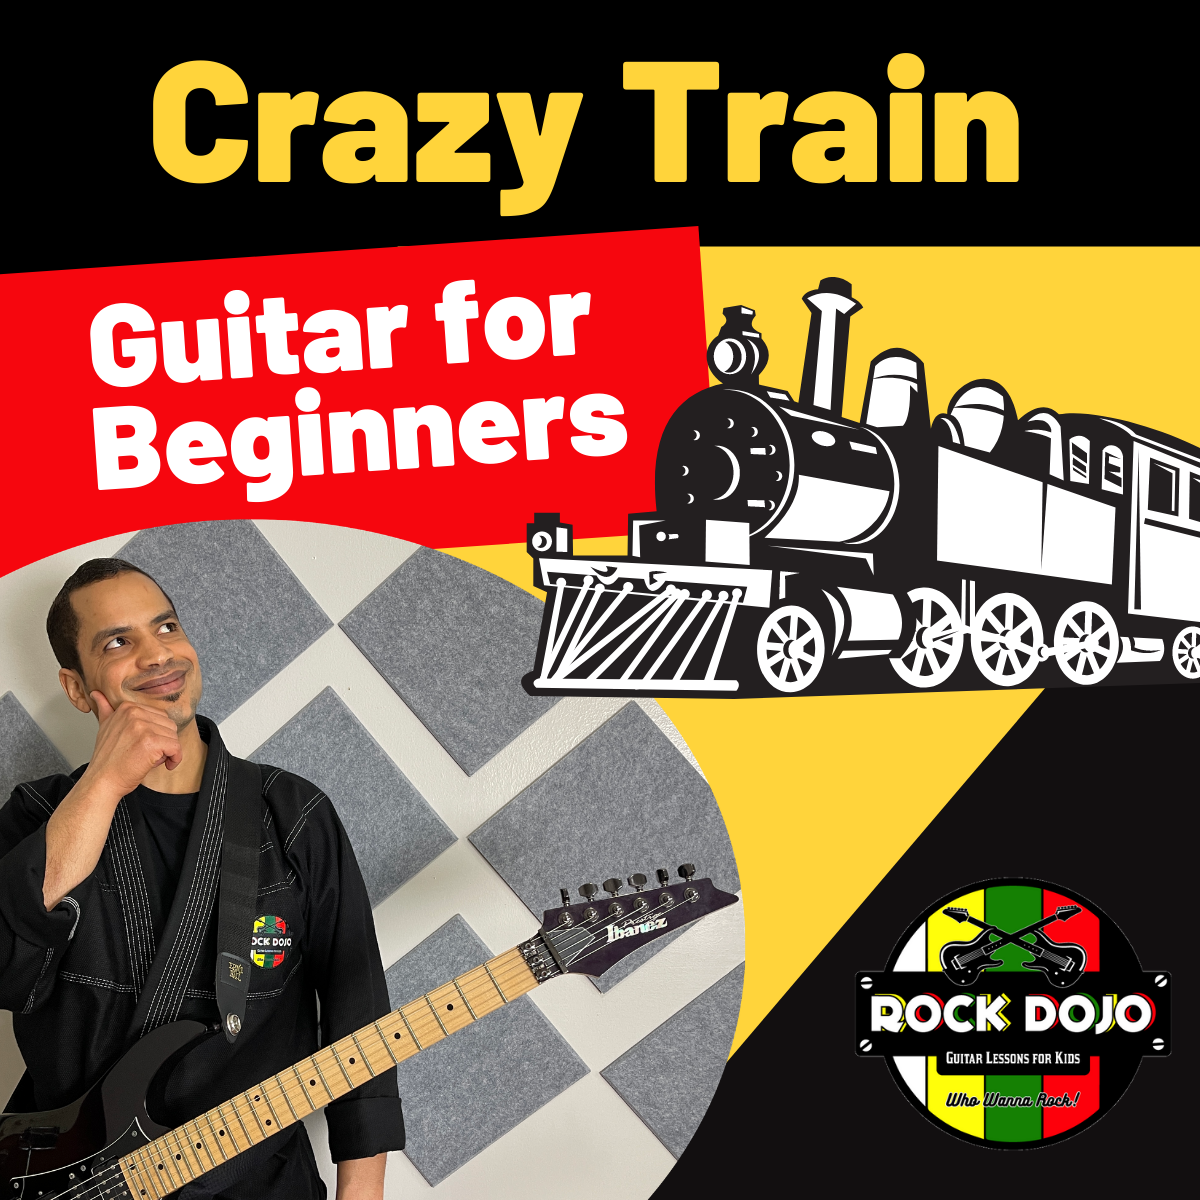 Learn how to play crazy train on guitar with crazy train tabs onscreen.